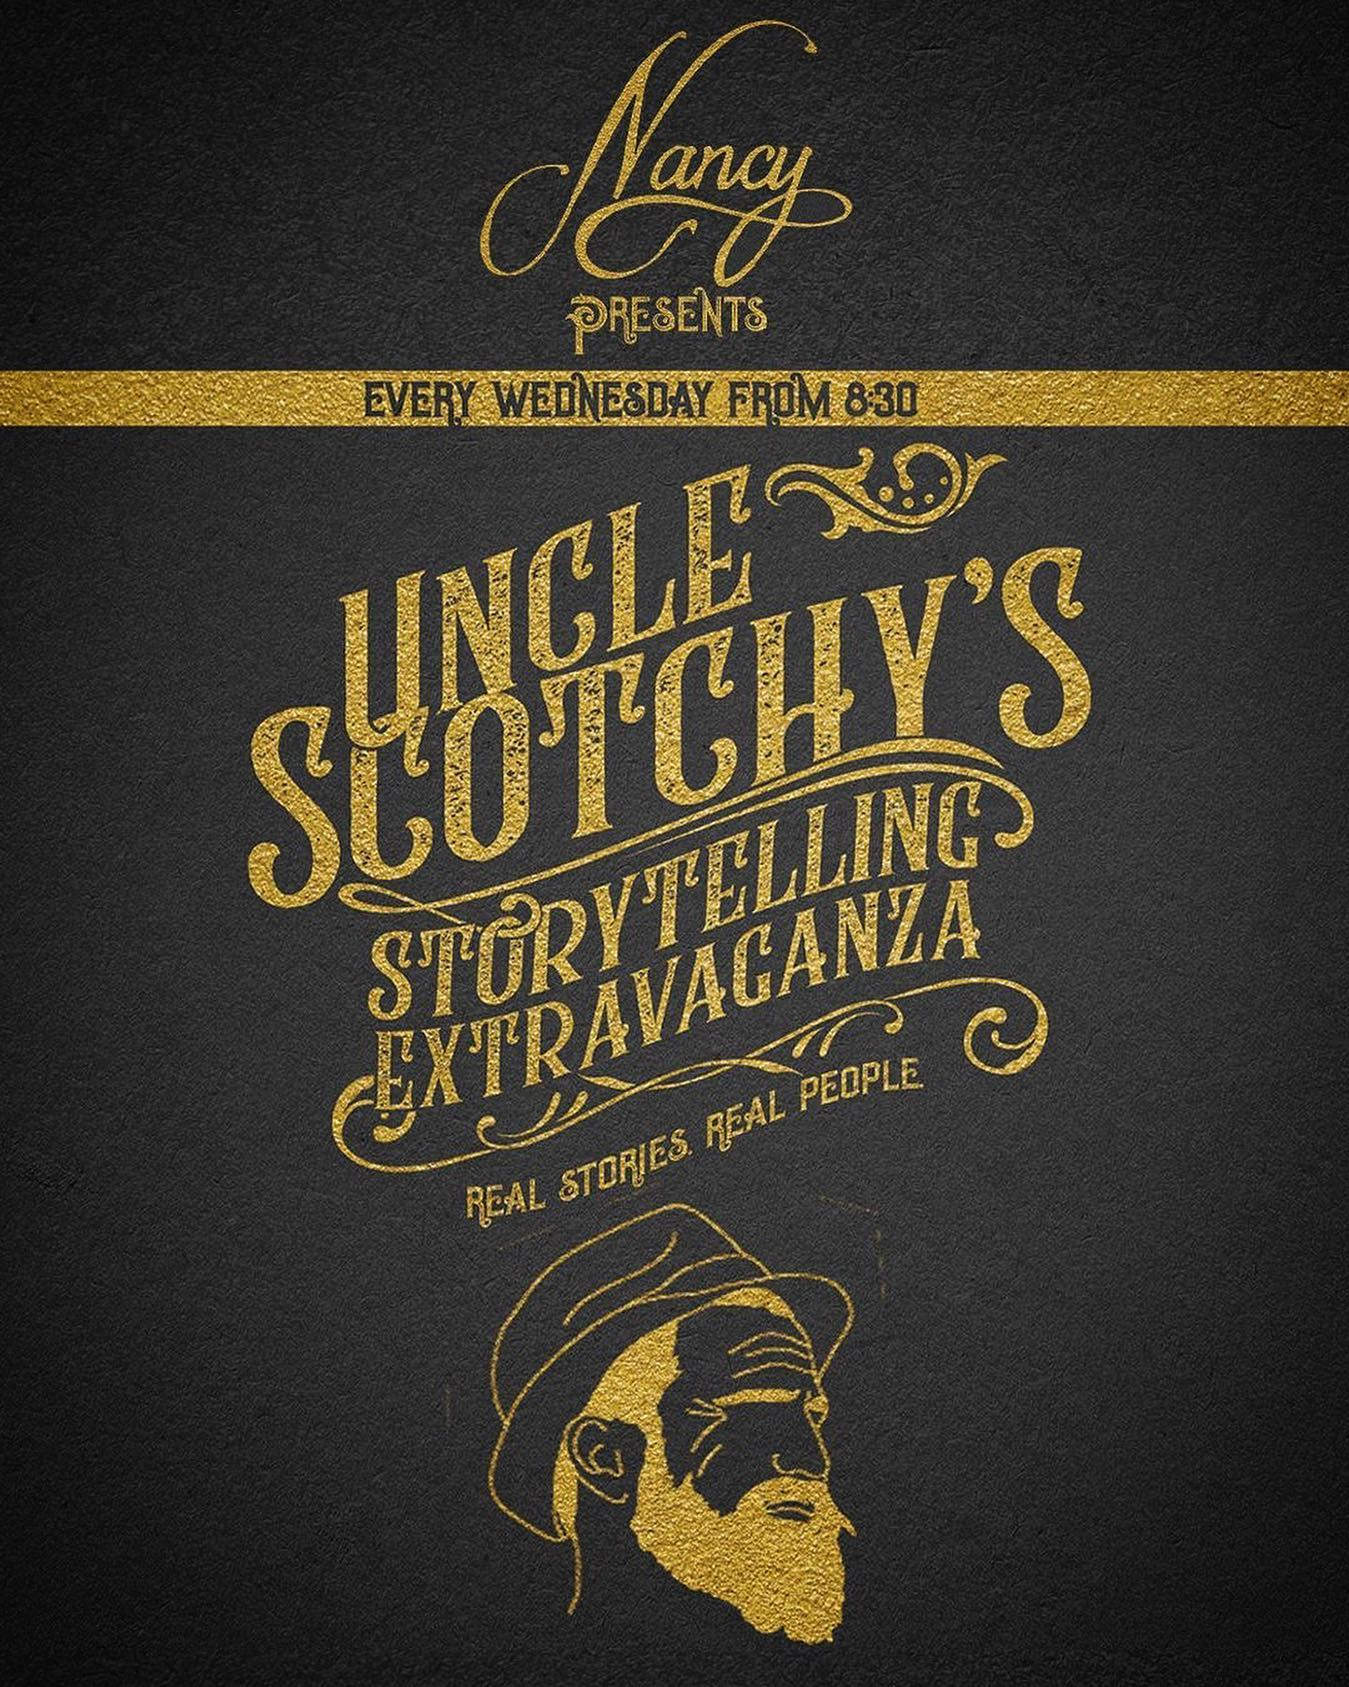 Uncle Scotchy's Storytelling at Bar Nancy - Every Wednesday at 8pm